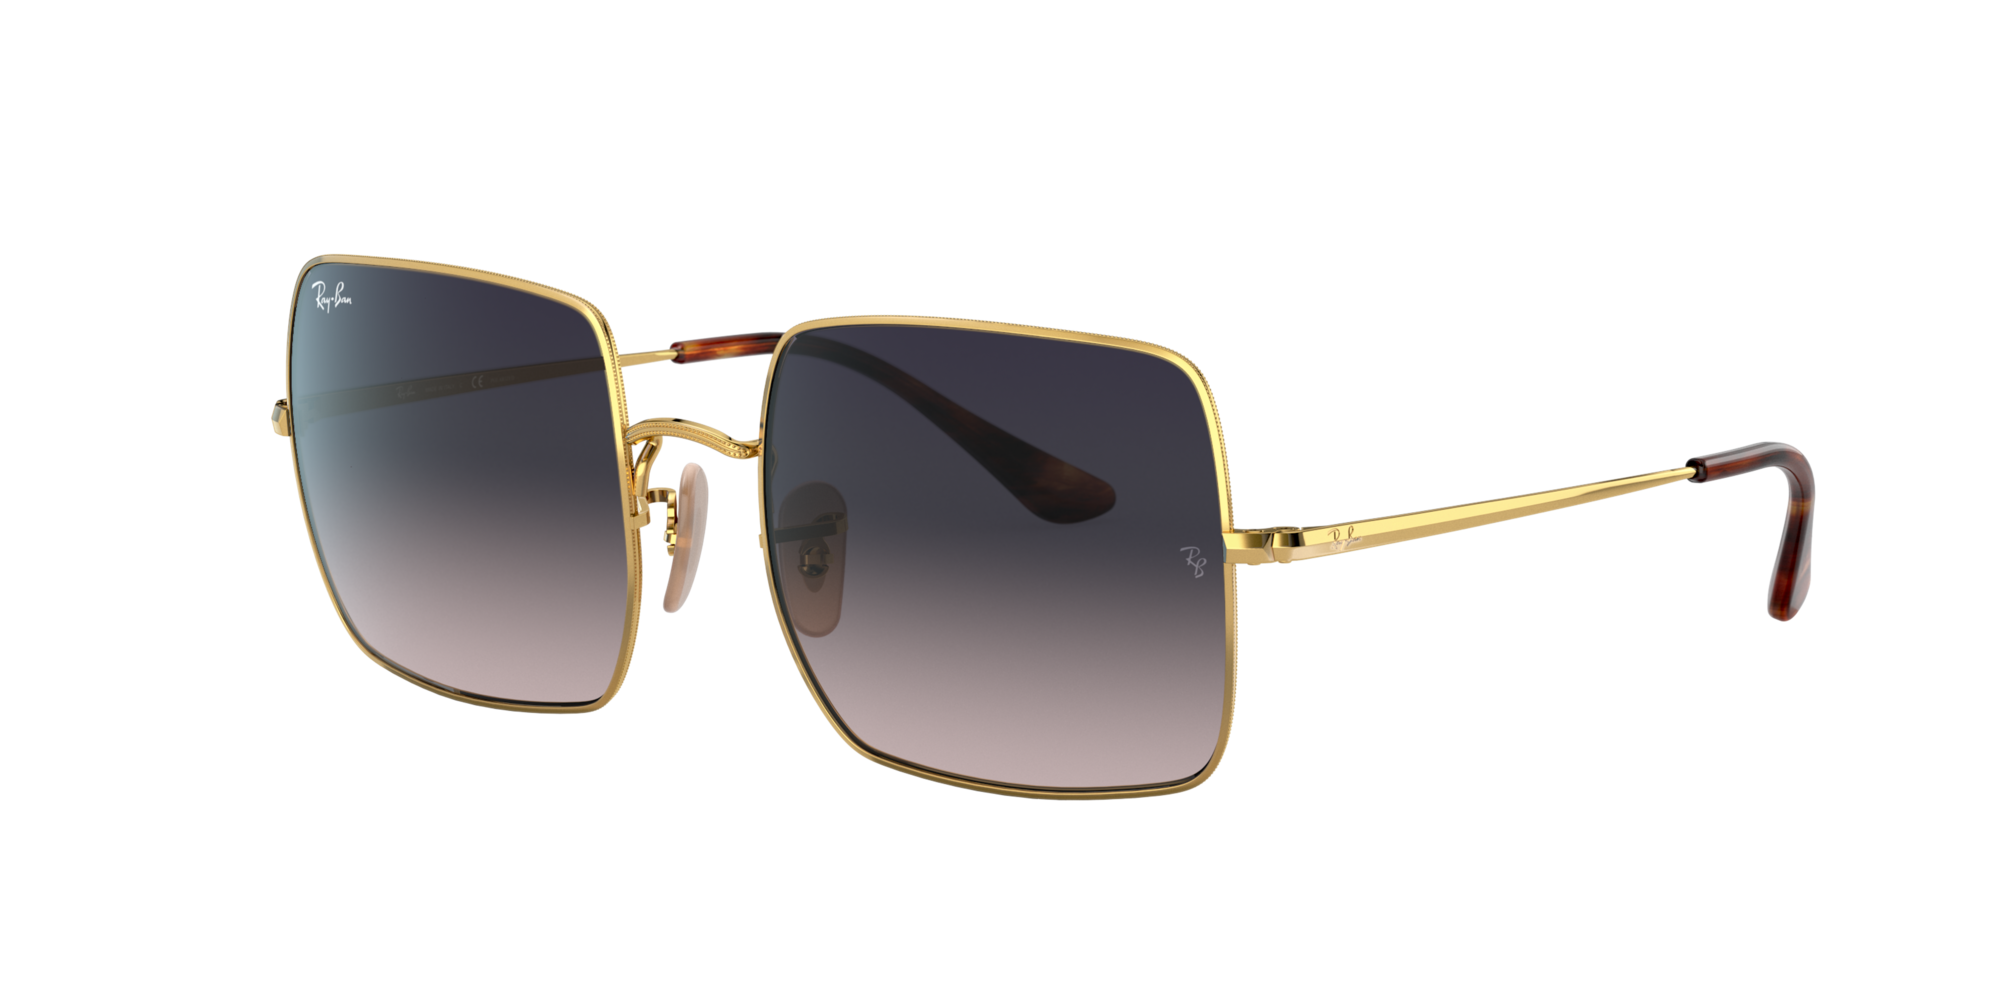 Ray Ban Woman  RB1971 SQUARE 1971 CLASSIC -  Frame color: Gold, Lens color: Blue, Size 54-19/145